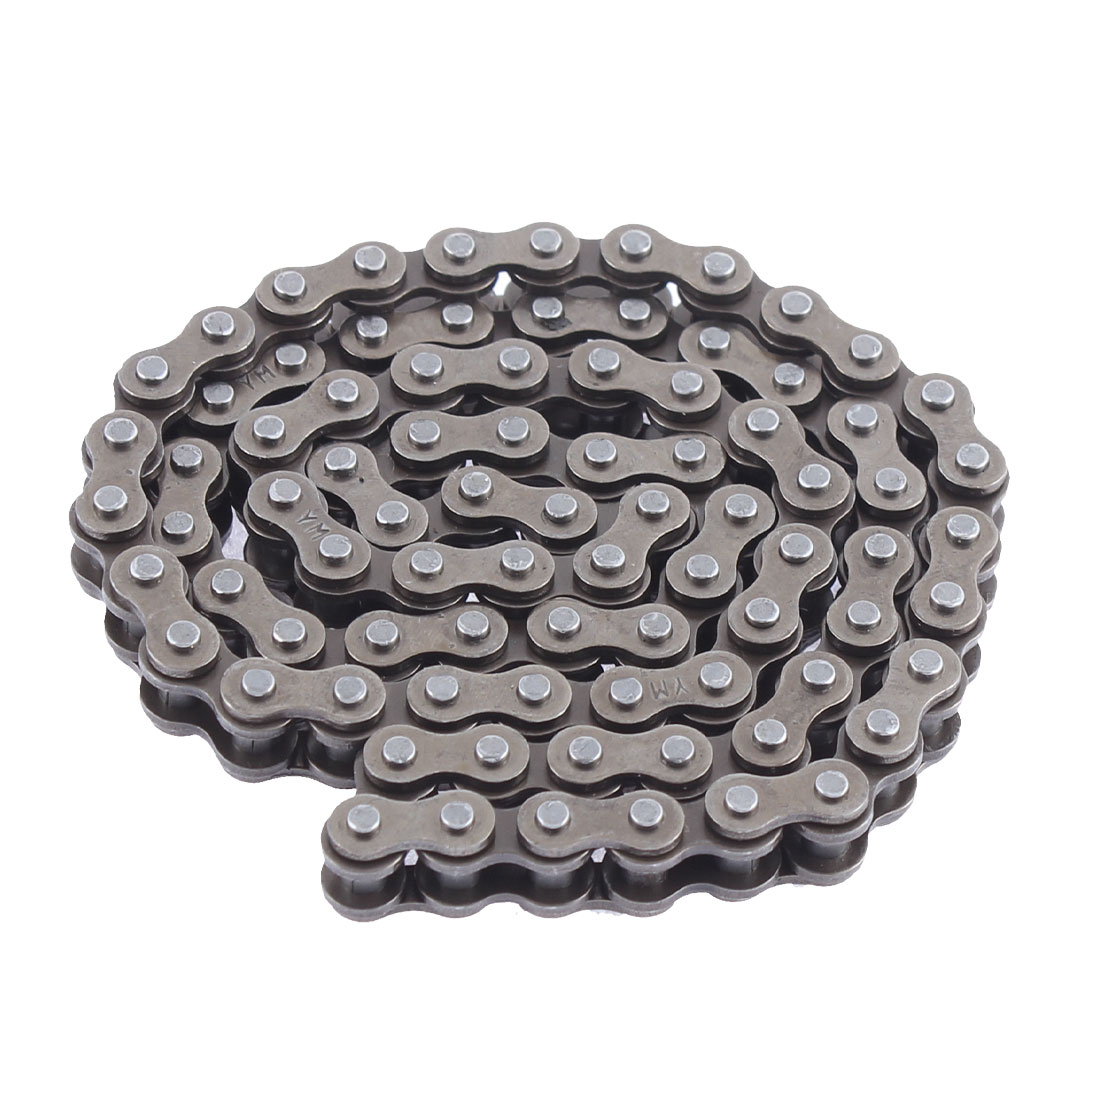 Unique BargainsMotorcycle Bike Engine 84 Link Metal O-Ringroller Drive Timing Chain Dark Gray